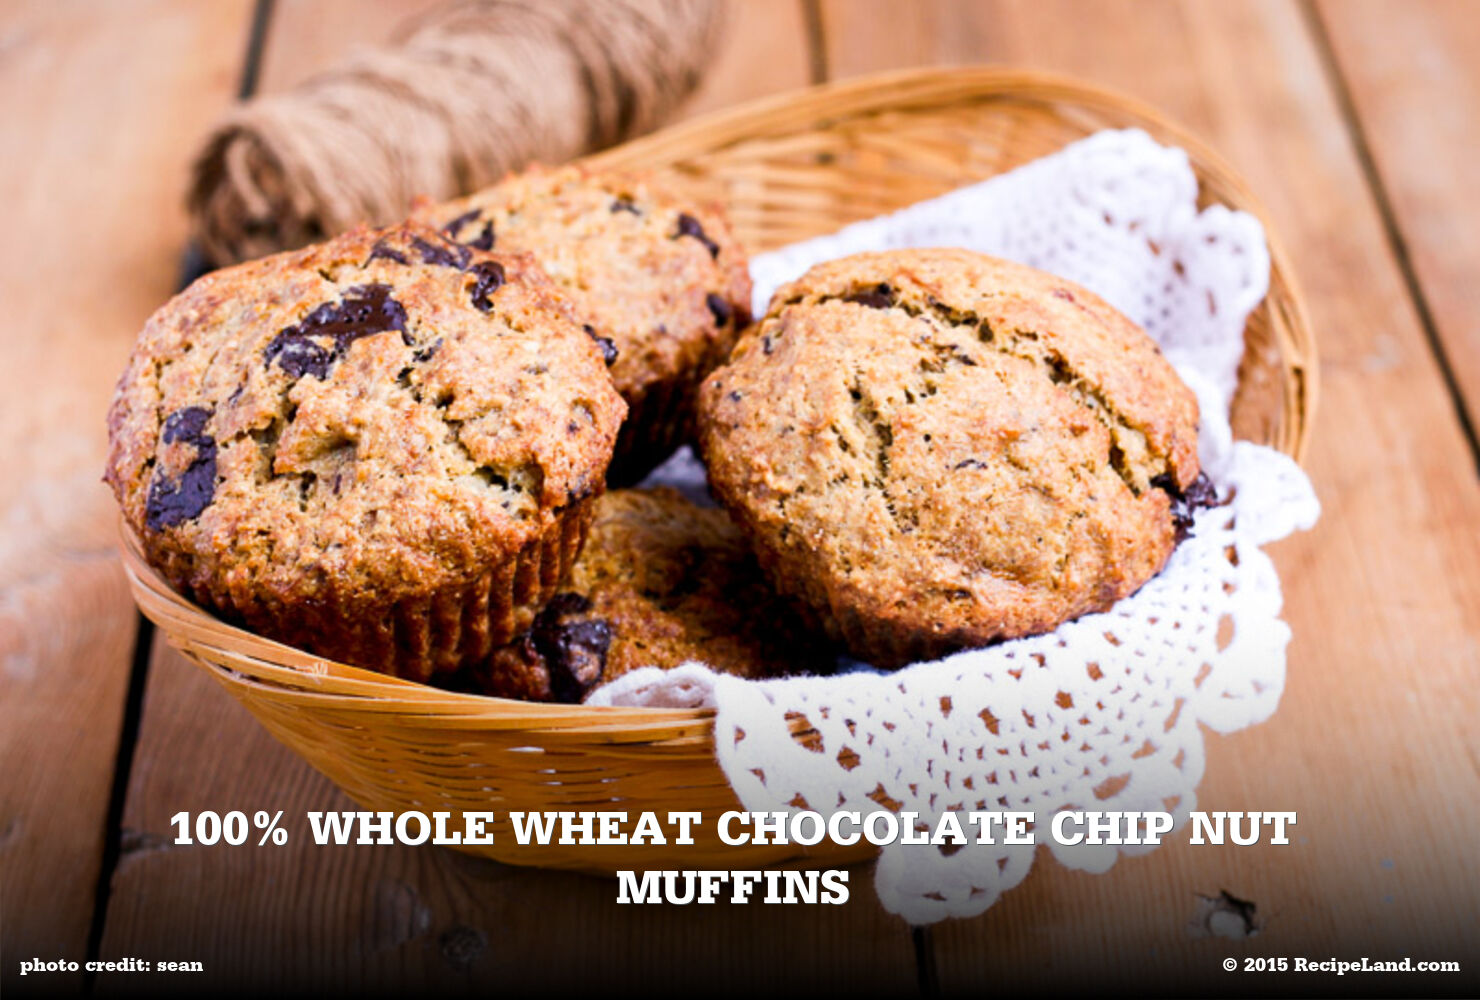 100% Whole Wheat Chocolate Chip Nut Muffins